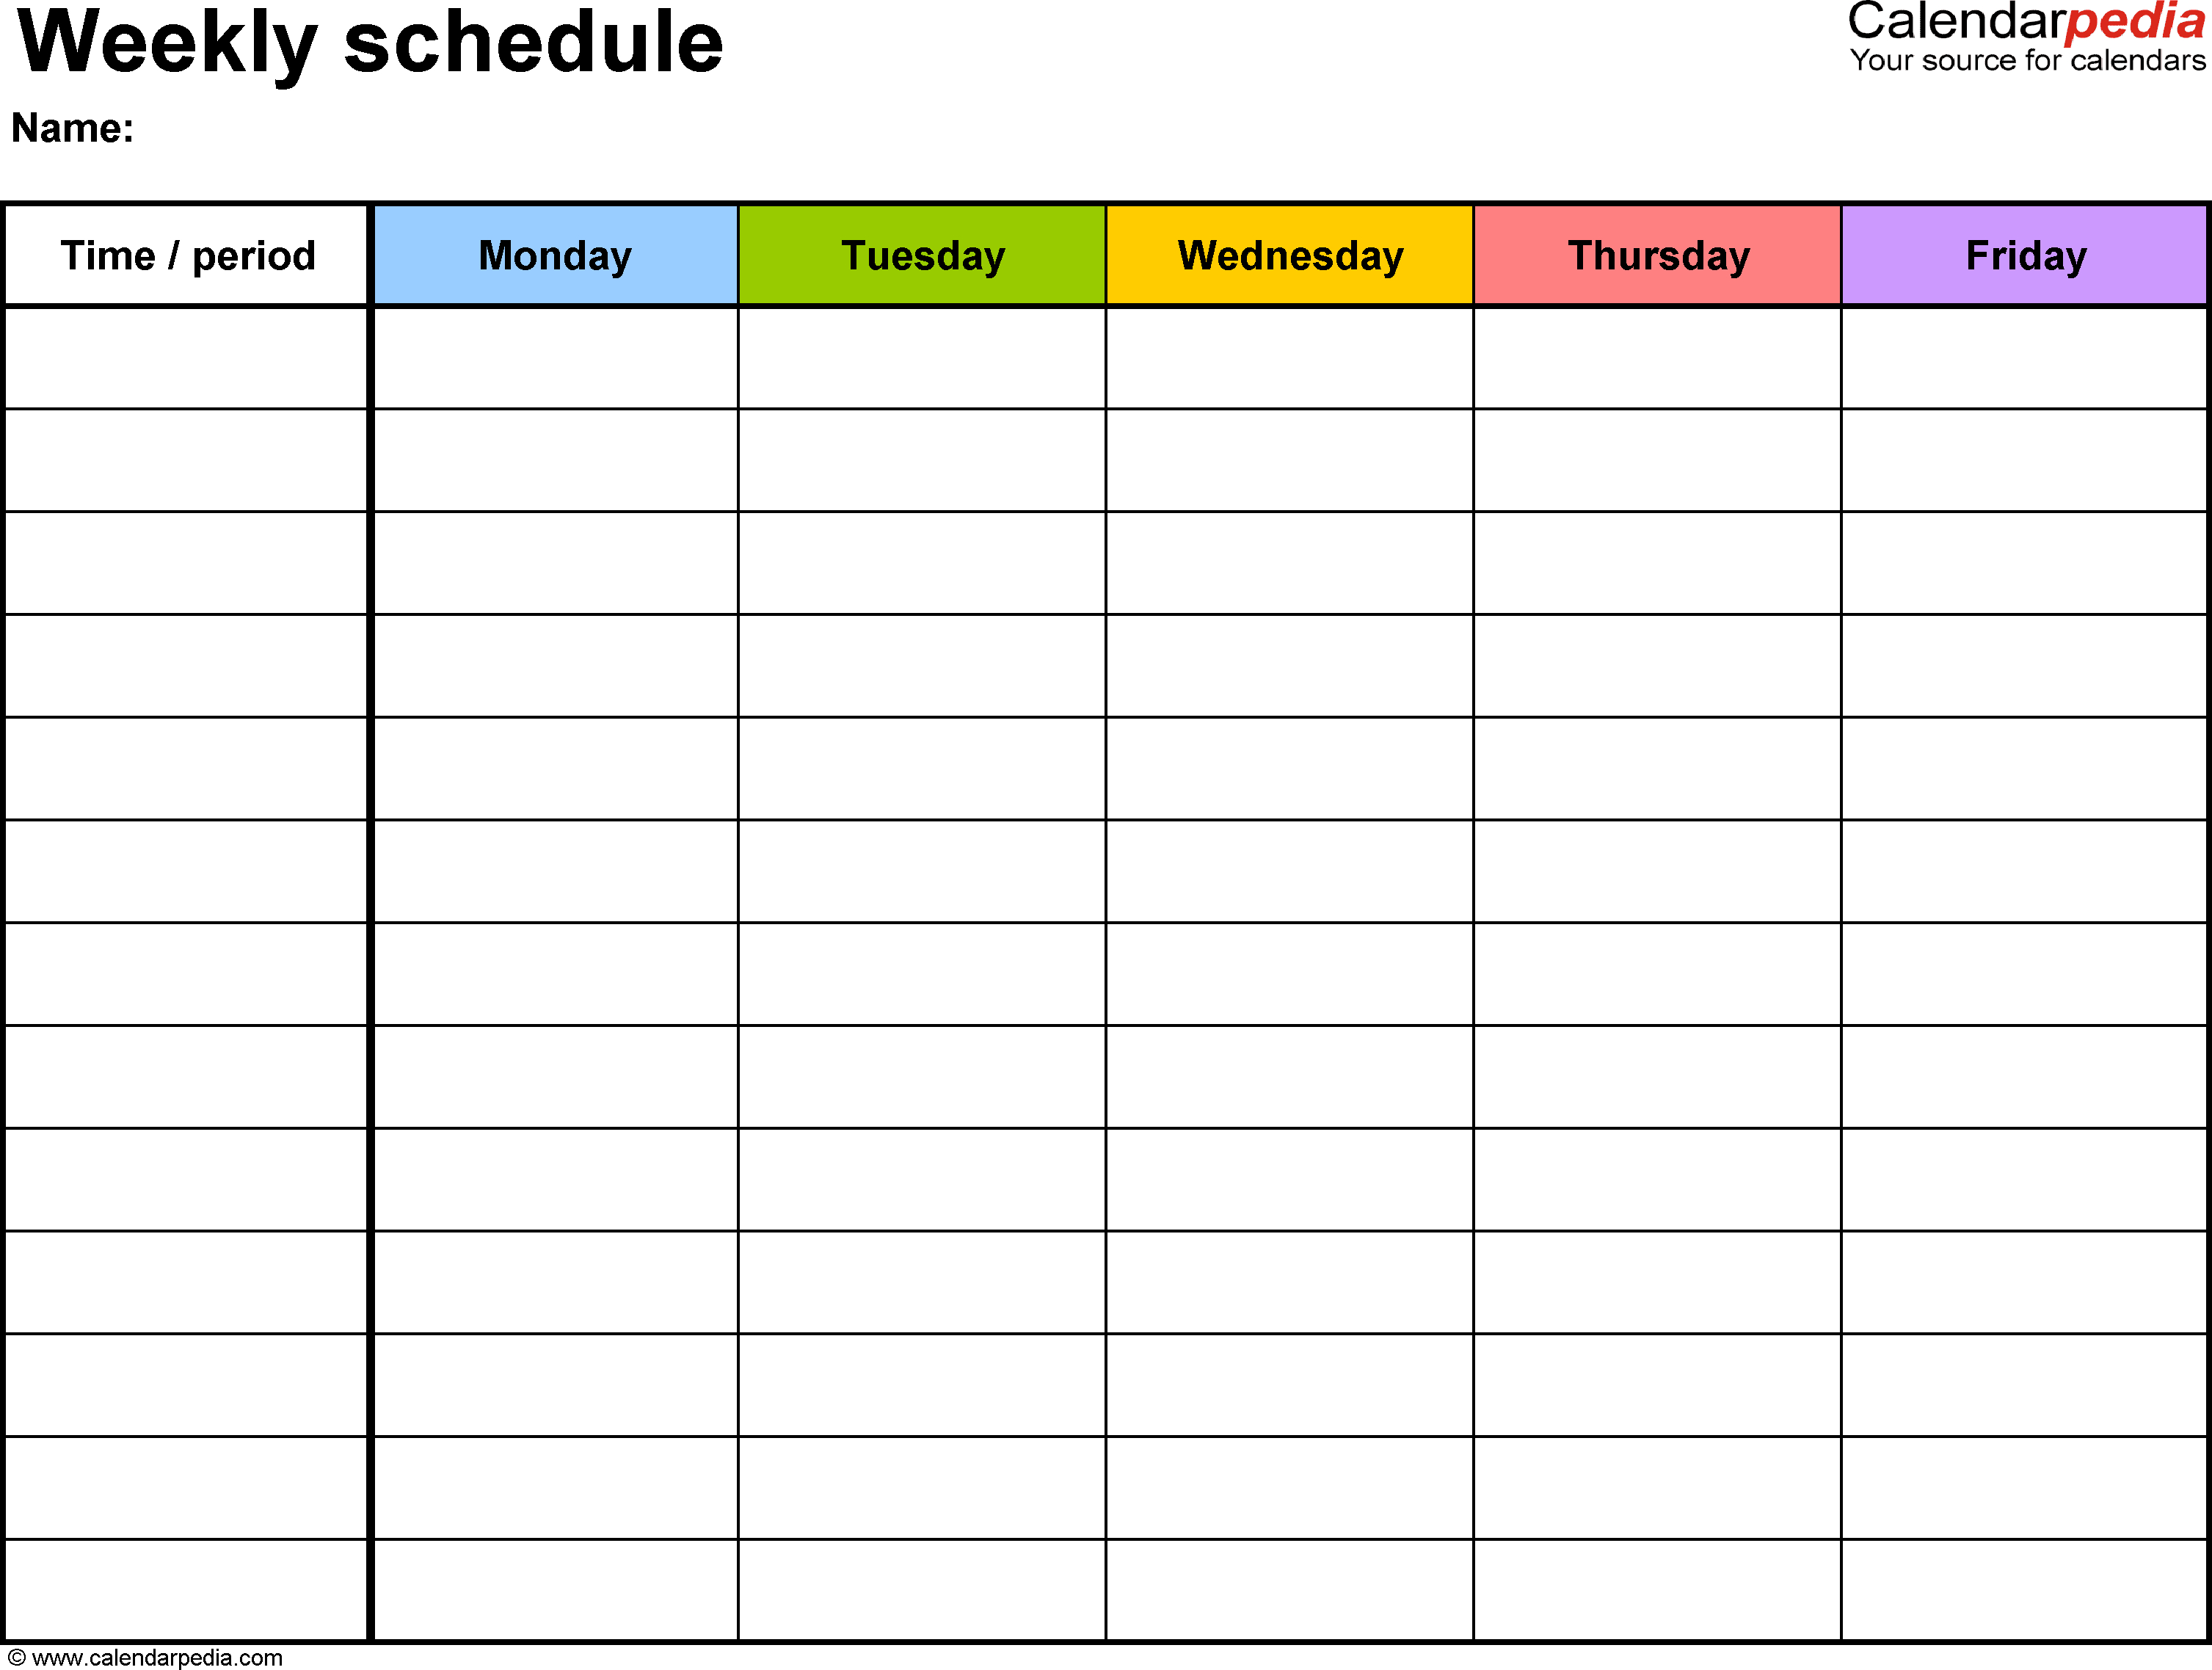 Weekly Schedule Template For Word Version 1: Landscape, 1 intended for Weekday Calendar Printable